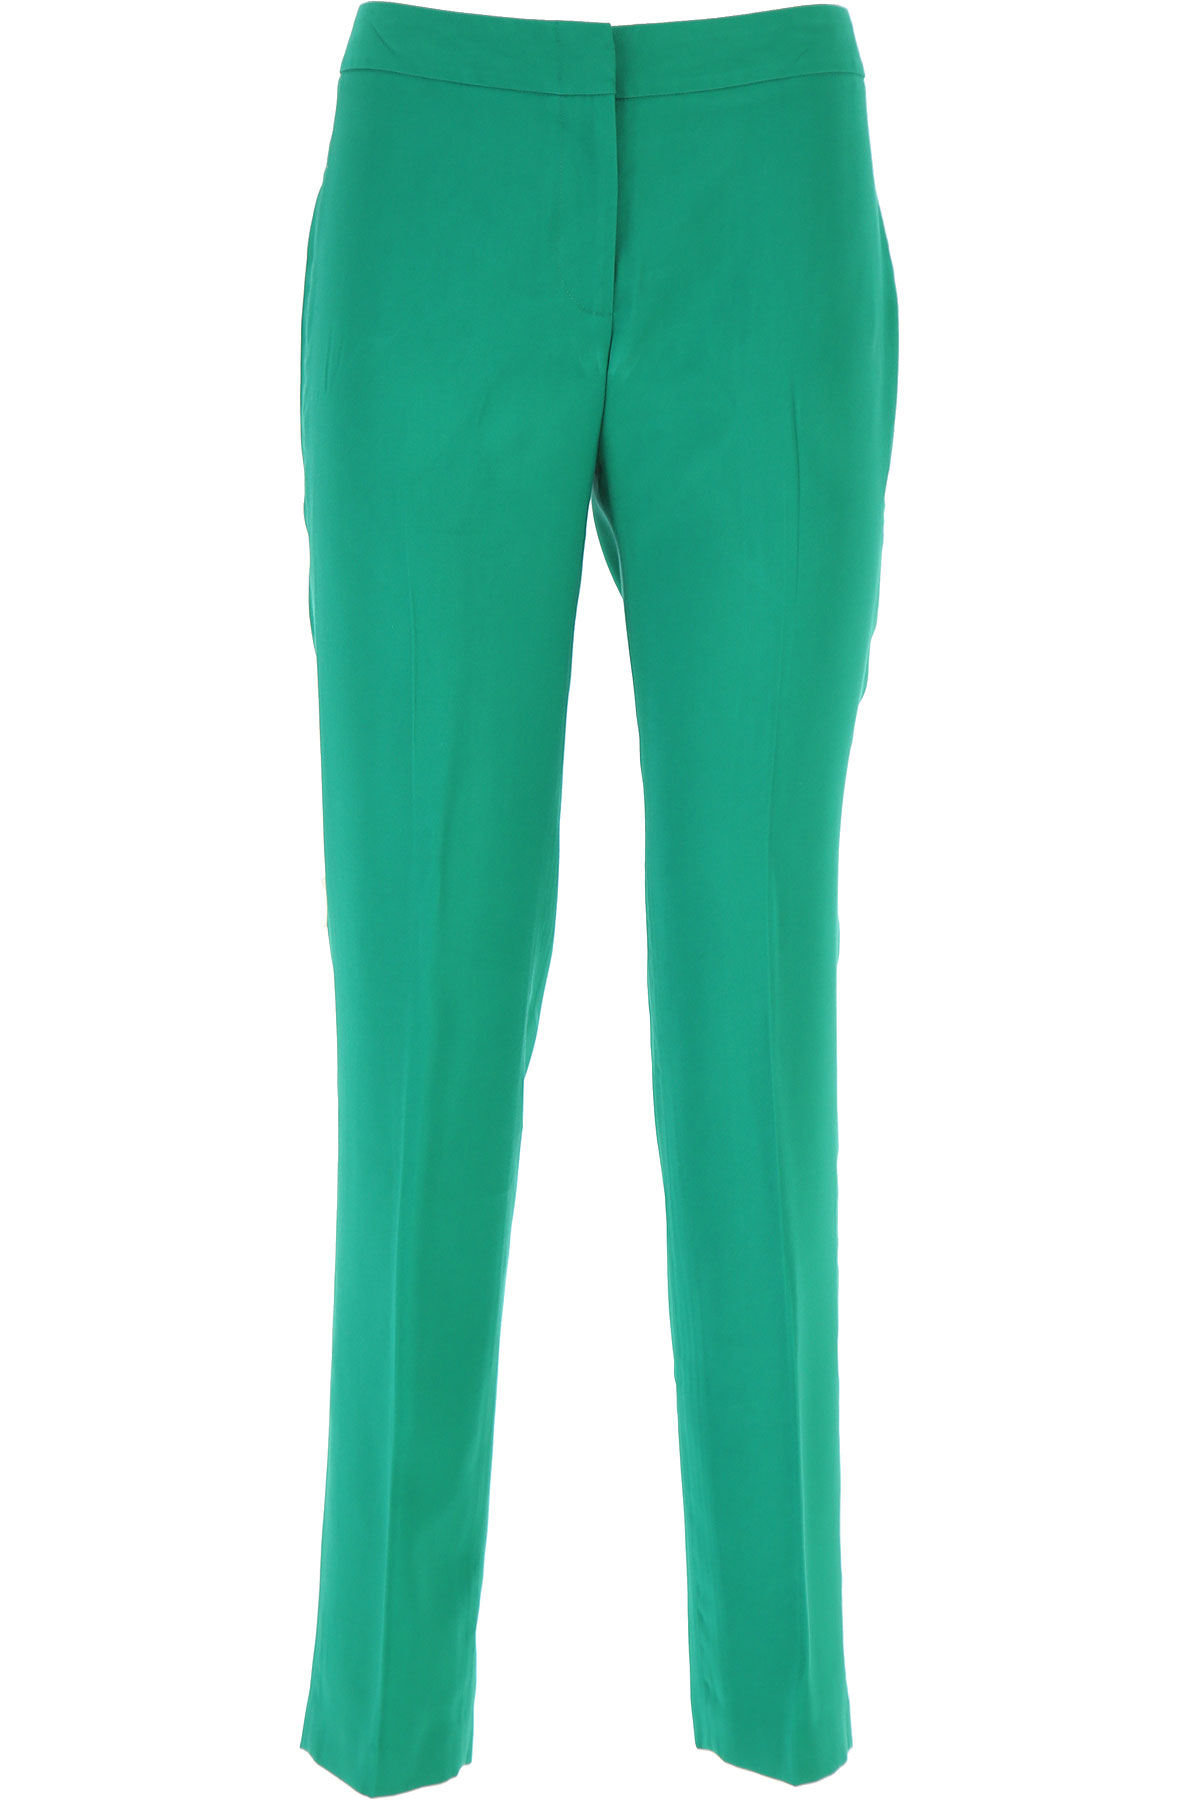 Federica Tosi Pants for Women On Sale, Green, viscosa, 2019, 26 4